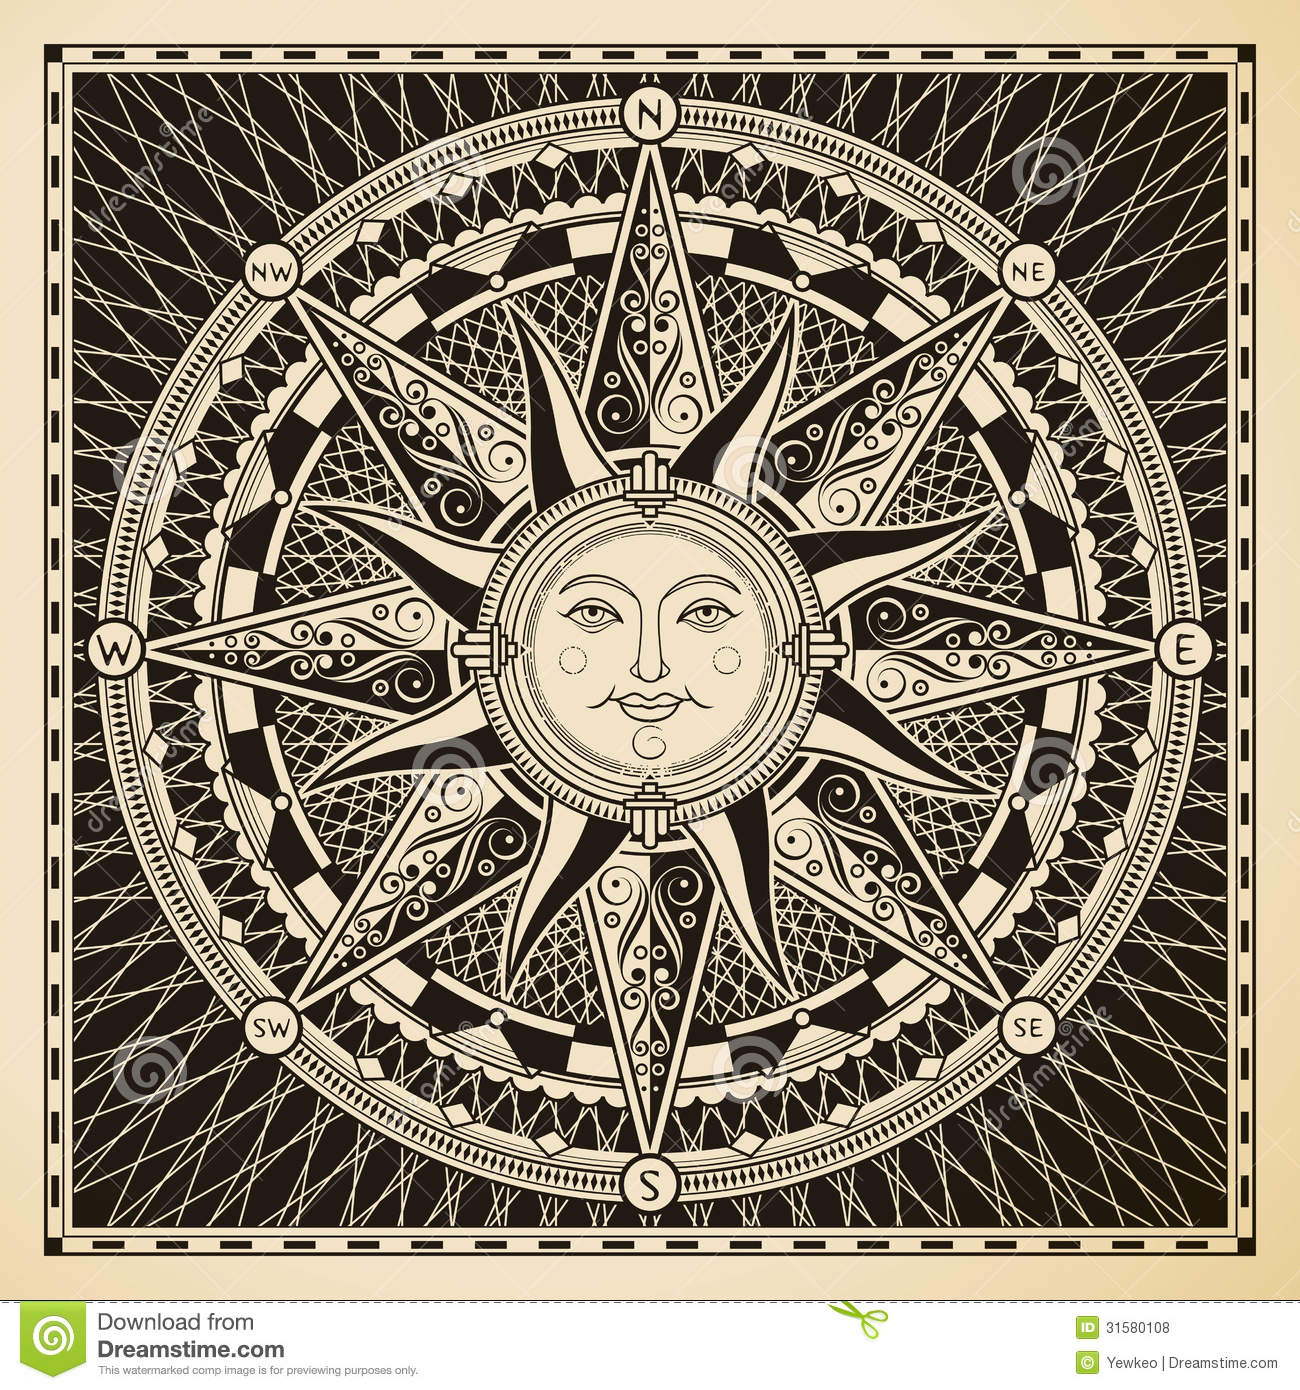 Sun Compass Royalty Free Stock Photos - Image: 31580108: https://www.dreamstime.com/royalty-free-stock-photos-sun-compass...